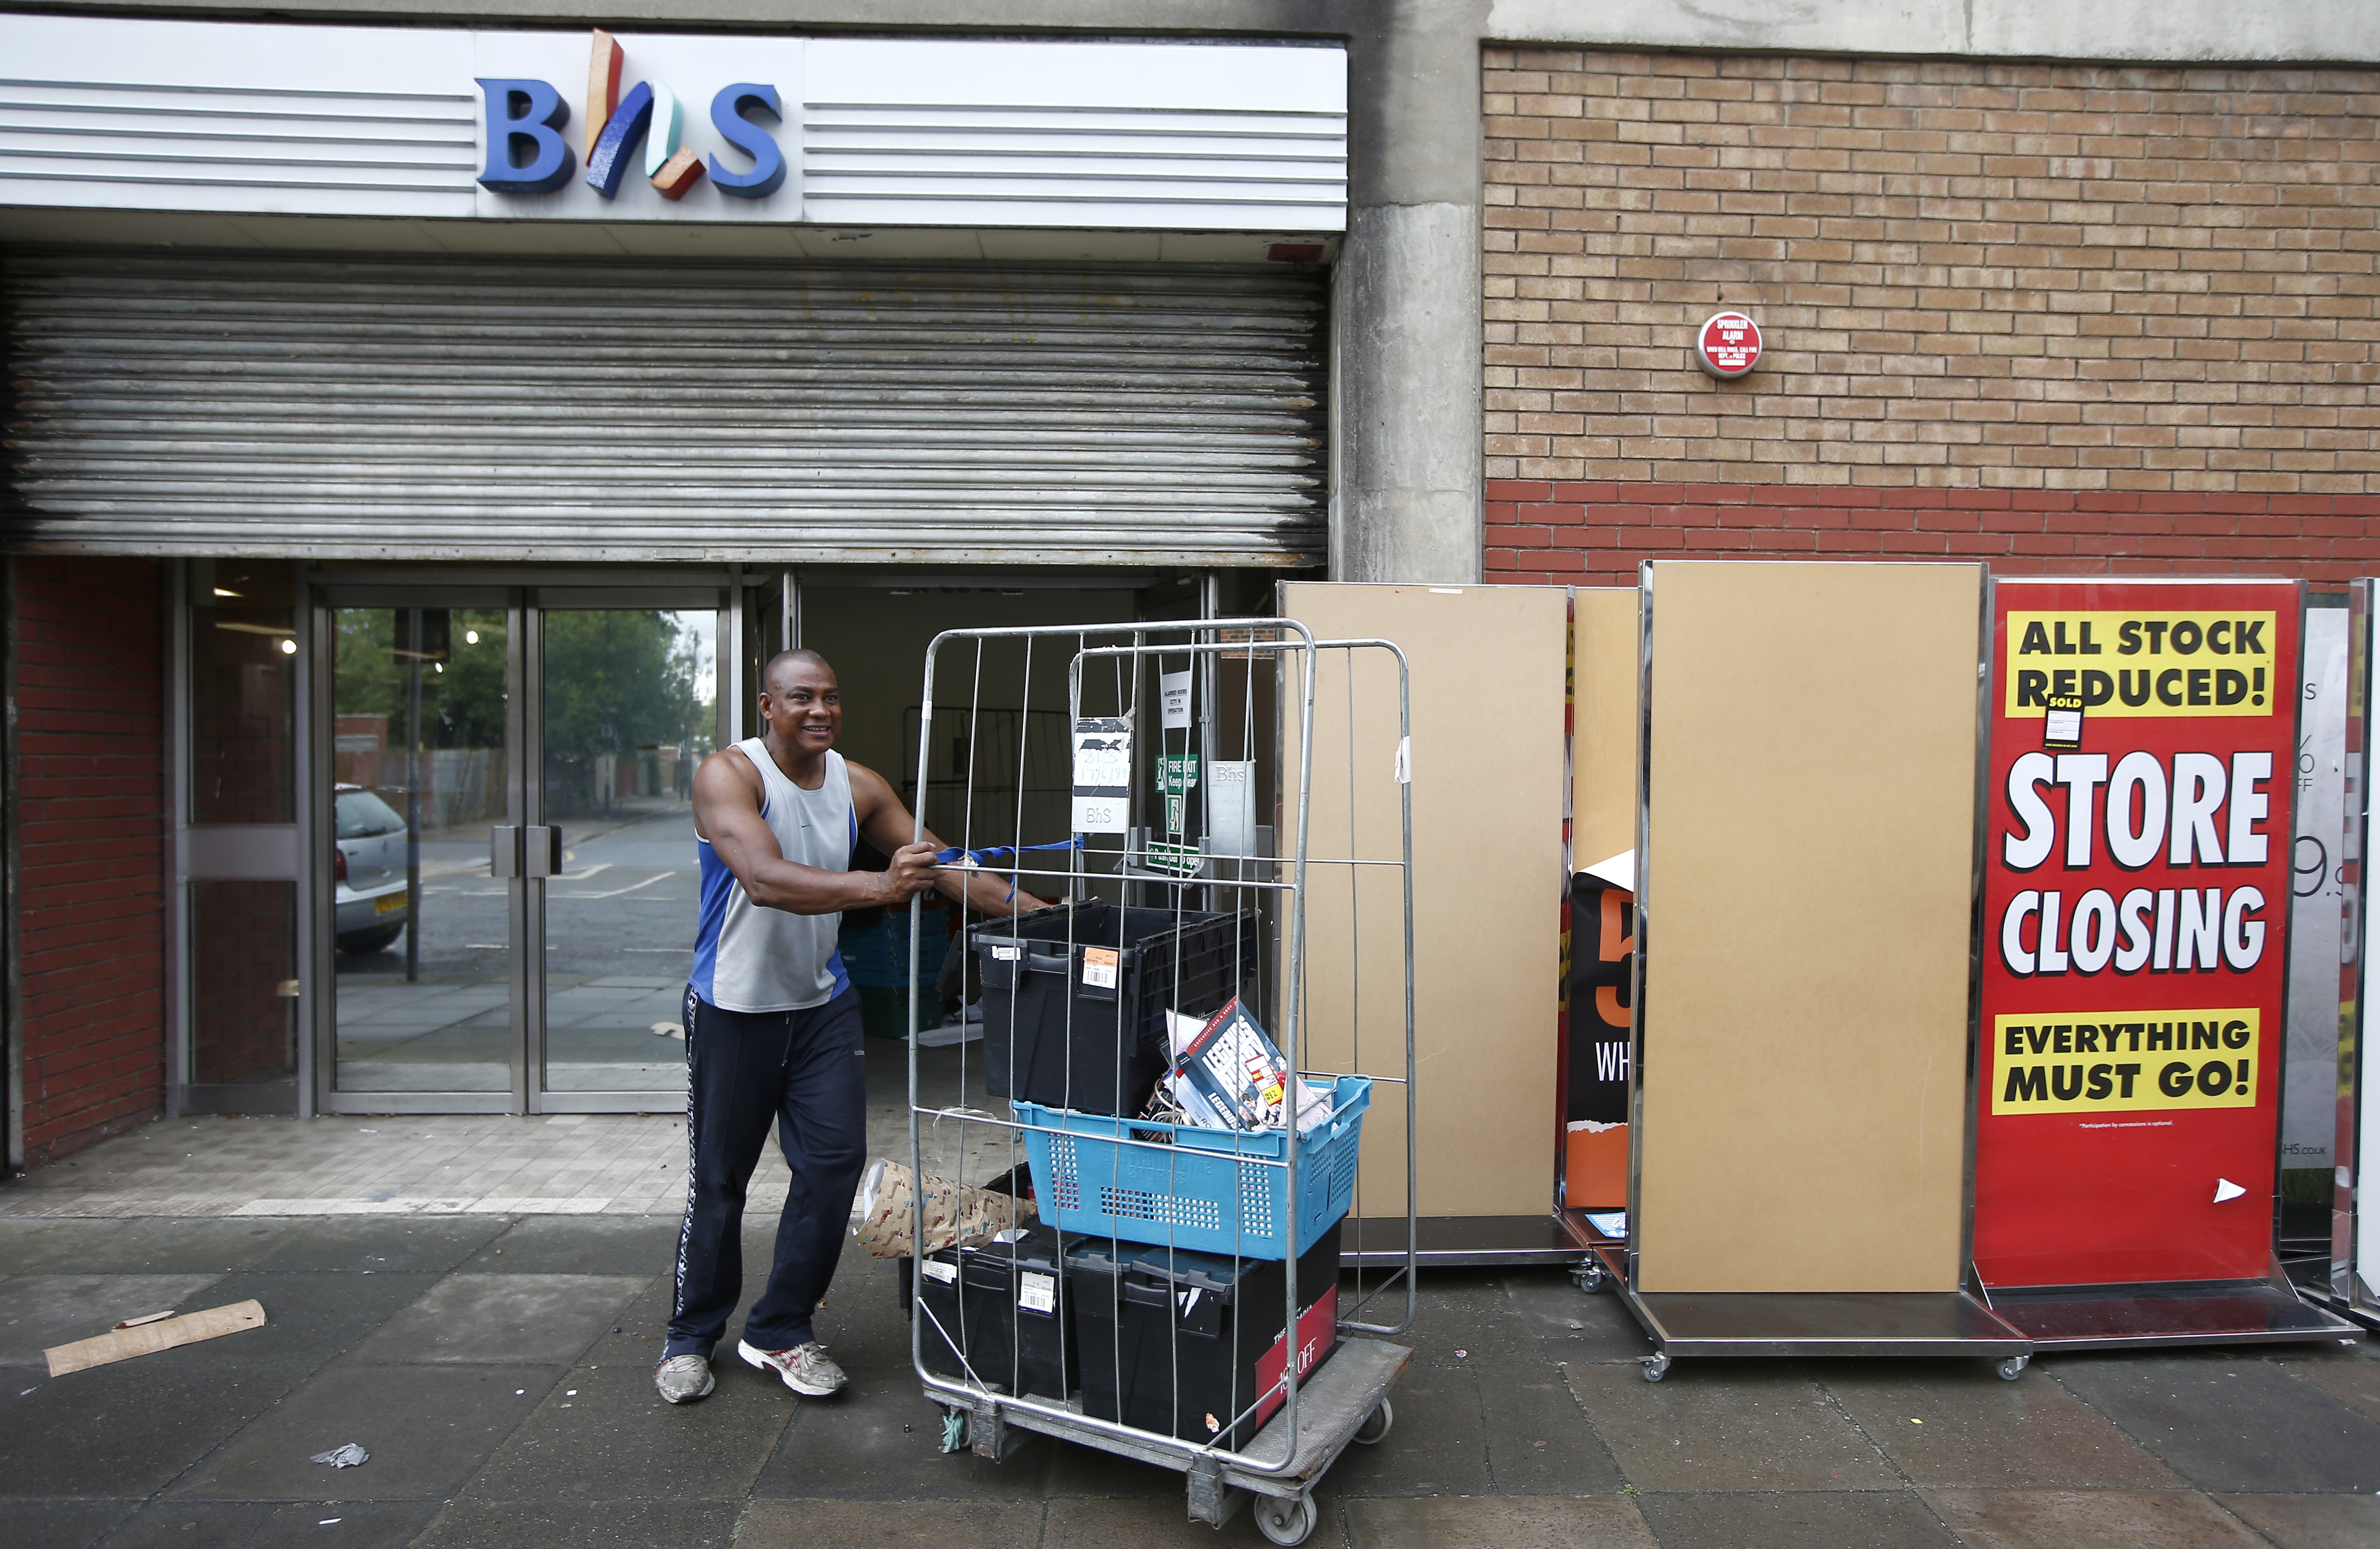 A worker removes items a BHS store. PwC received a record fine for its audits of the failed retailer